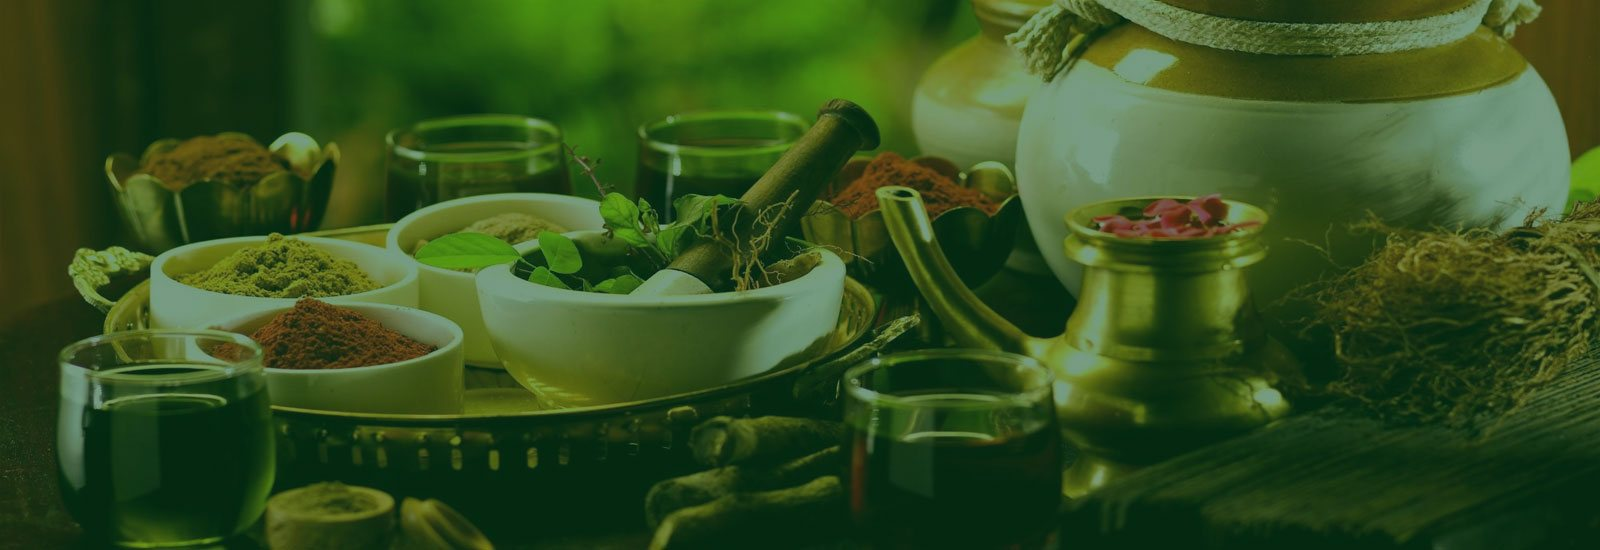 Ayurvedic Treatment in Kerala